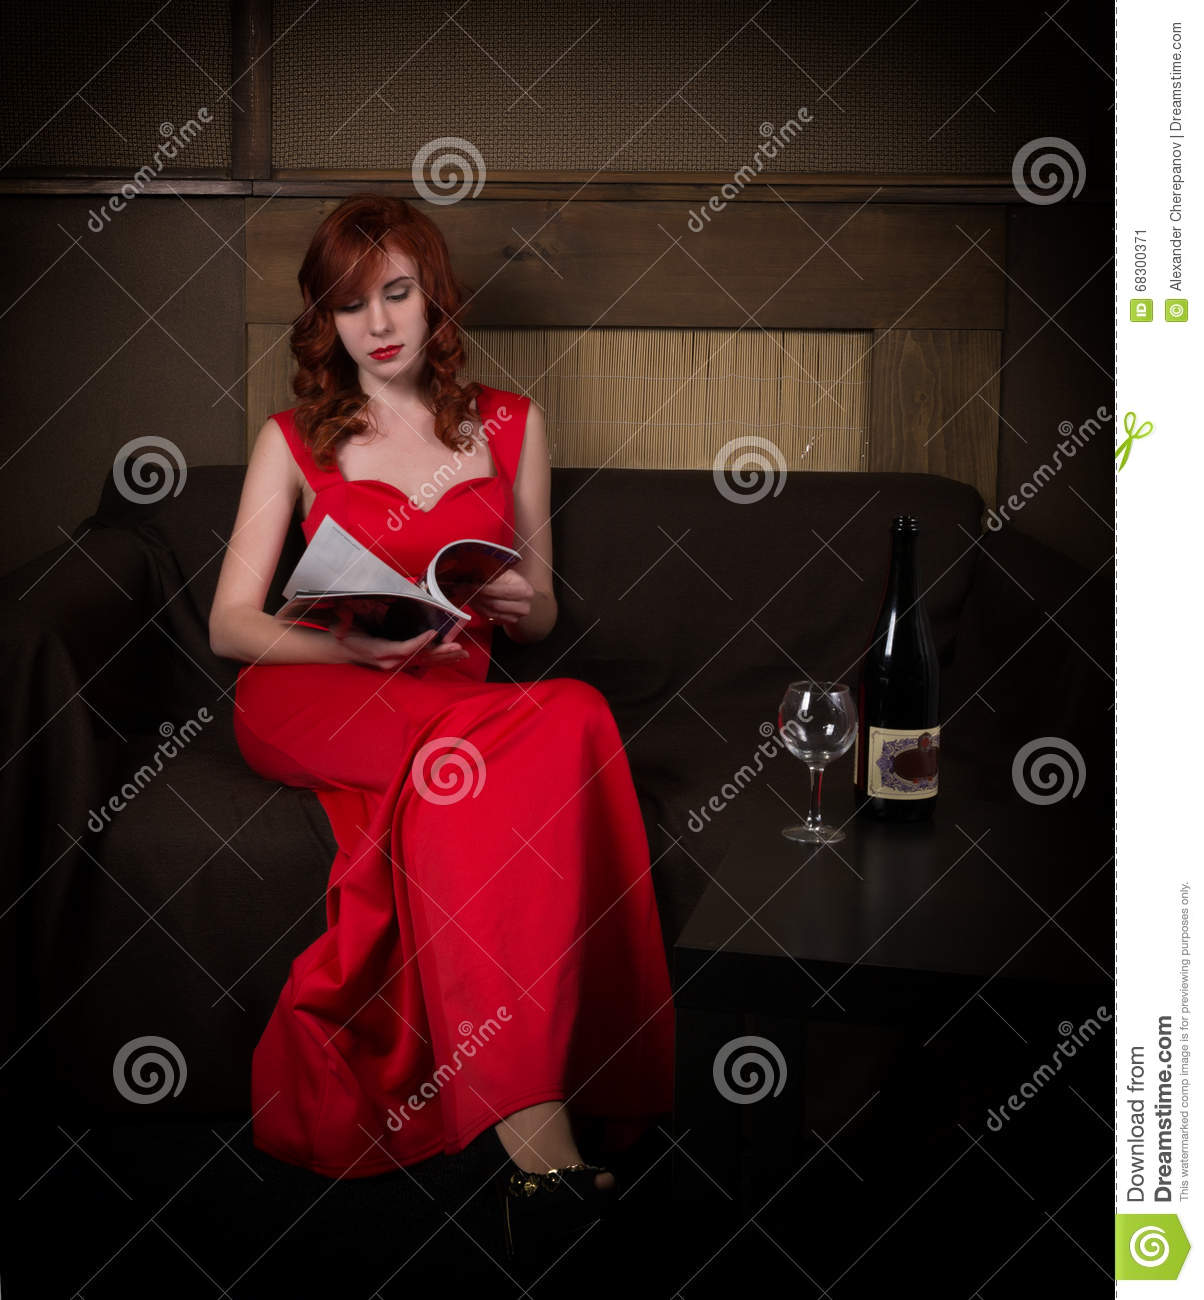 Elegant young redhead woman in a red dress, reads glamor magazine, having a glass of red wine.